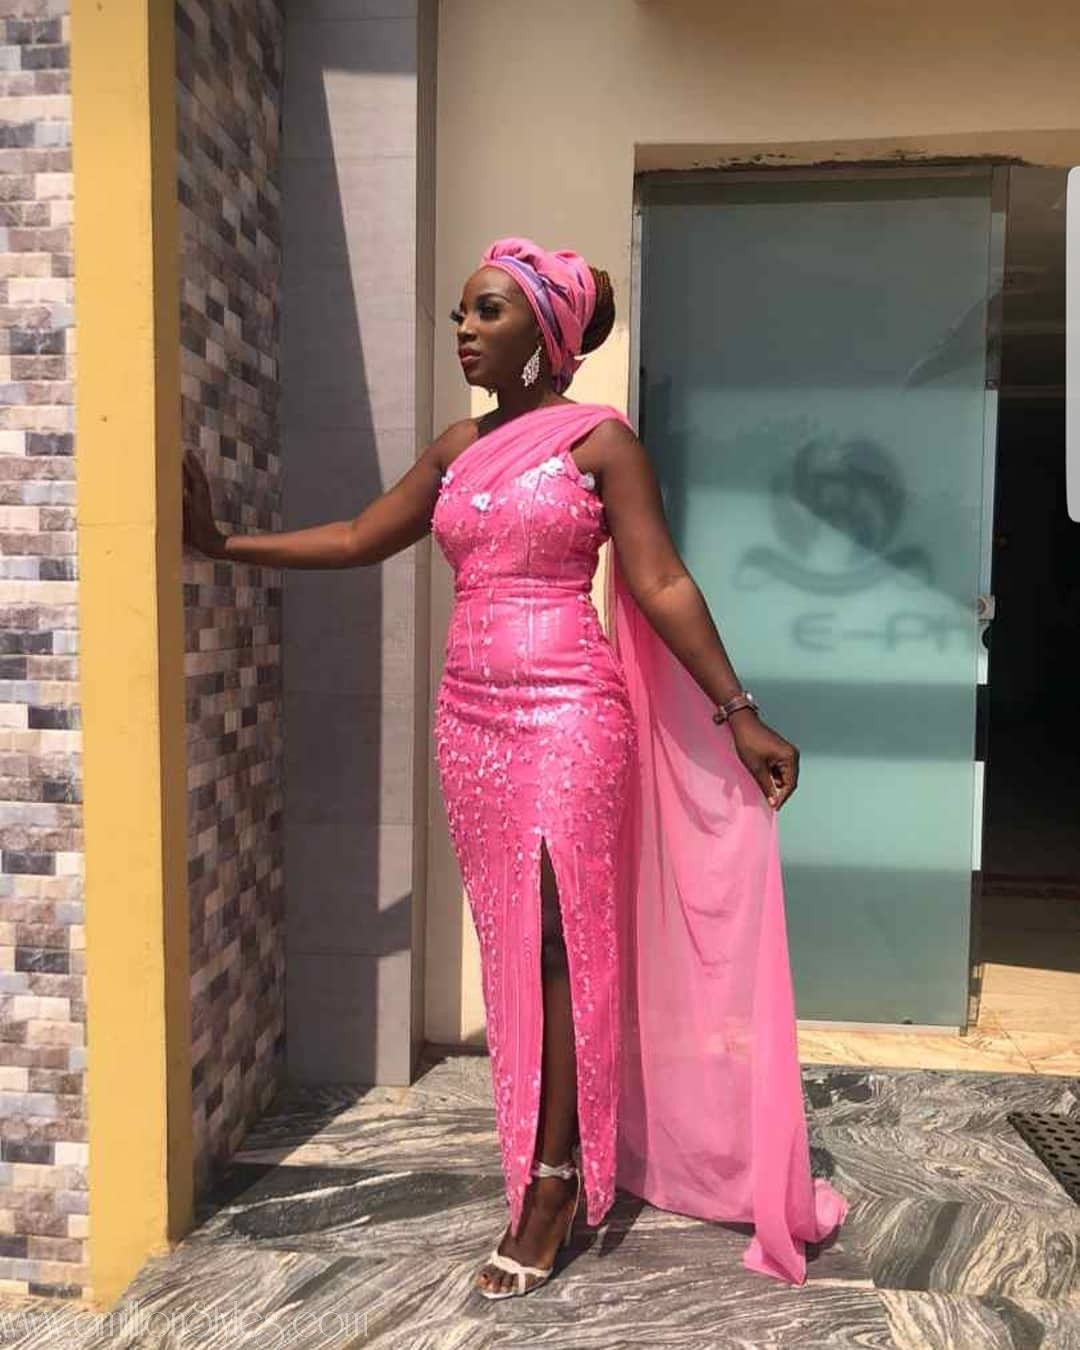 Latest Lace Asoebi Styles Volume 9 beauties! check out these dazzling aso ebi styles would turn heads at any owambe BEAUTIES! CHECK OUT THESE DAZZLING ASO EBI STYLES WOULD TURN HEADS AT ANY OWAMBE asoebi Outfit  tela pink amillionstyles